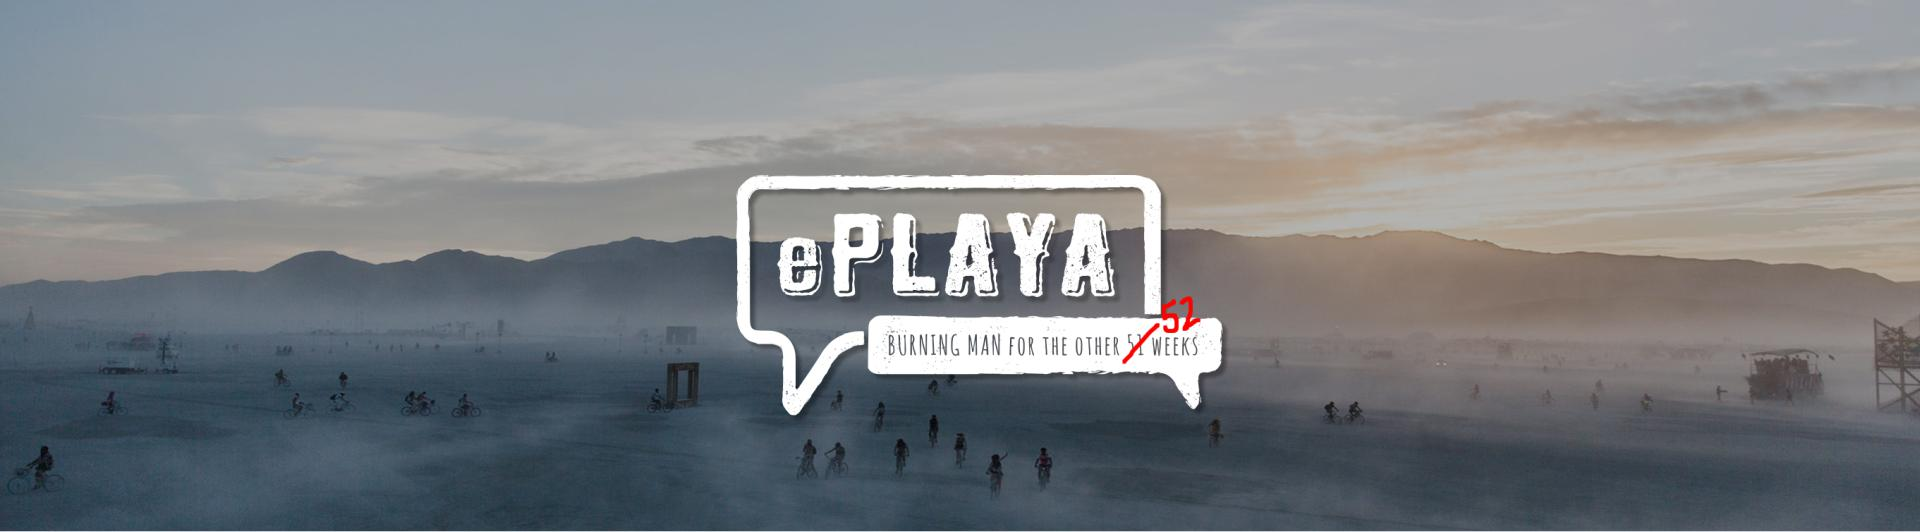 ePlaya: Burning Man for the other 51^W52 weeks